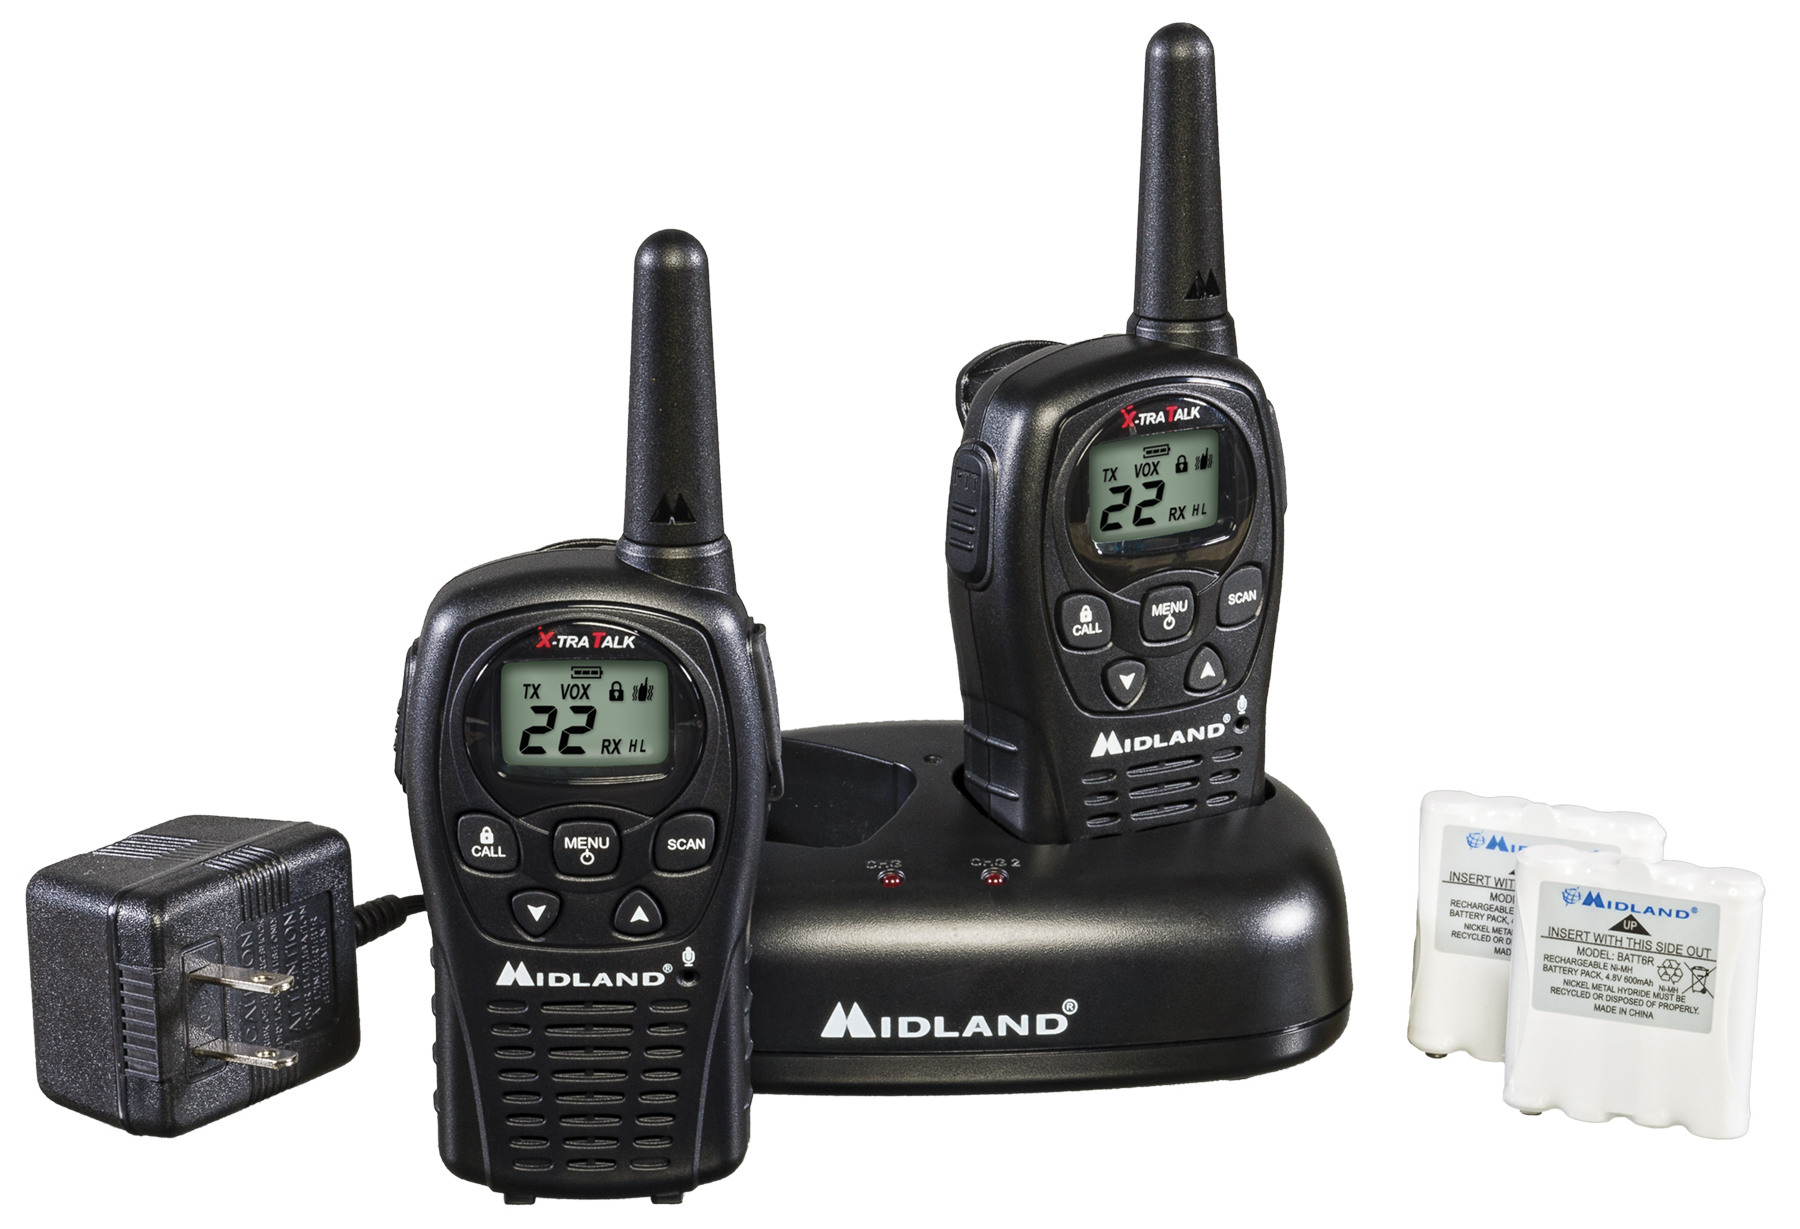 LXT500VP3 - Midland 22 Channel Extended Range FRS/GMRS Hand Held Radio